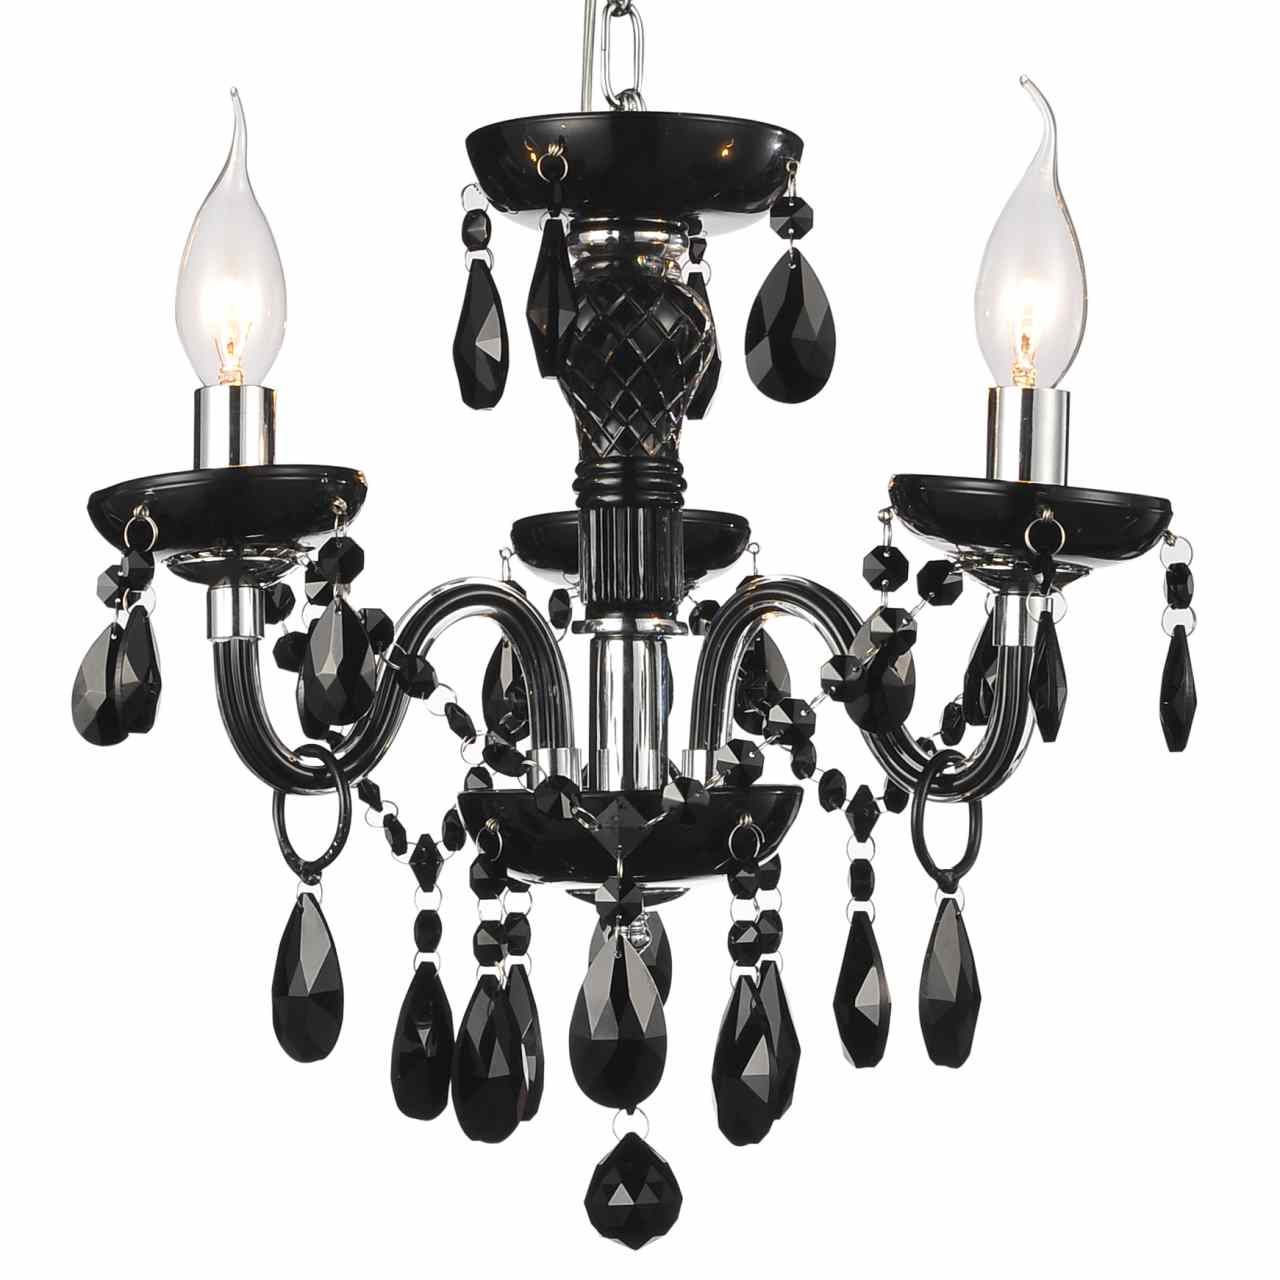 Brizzo lighting stores 14 victorian traditional crystal round mini picture of 14 victorian traditional crystal round mini chandelier jet black tear drops crystals 3 aloadofball Images